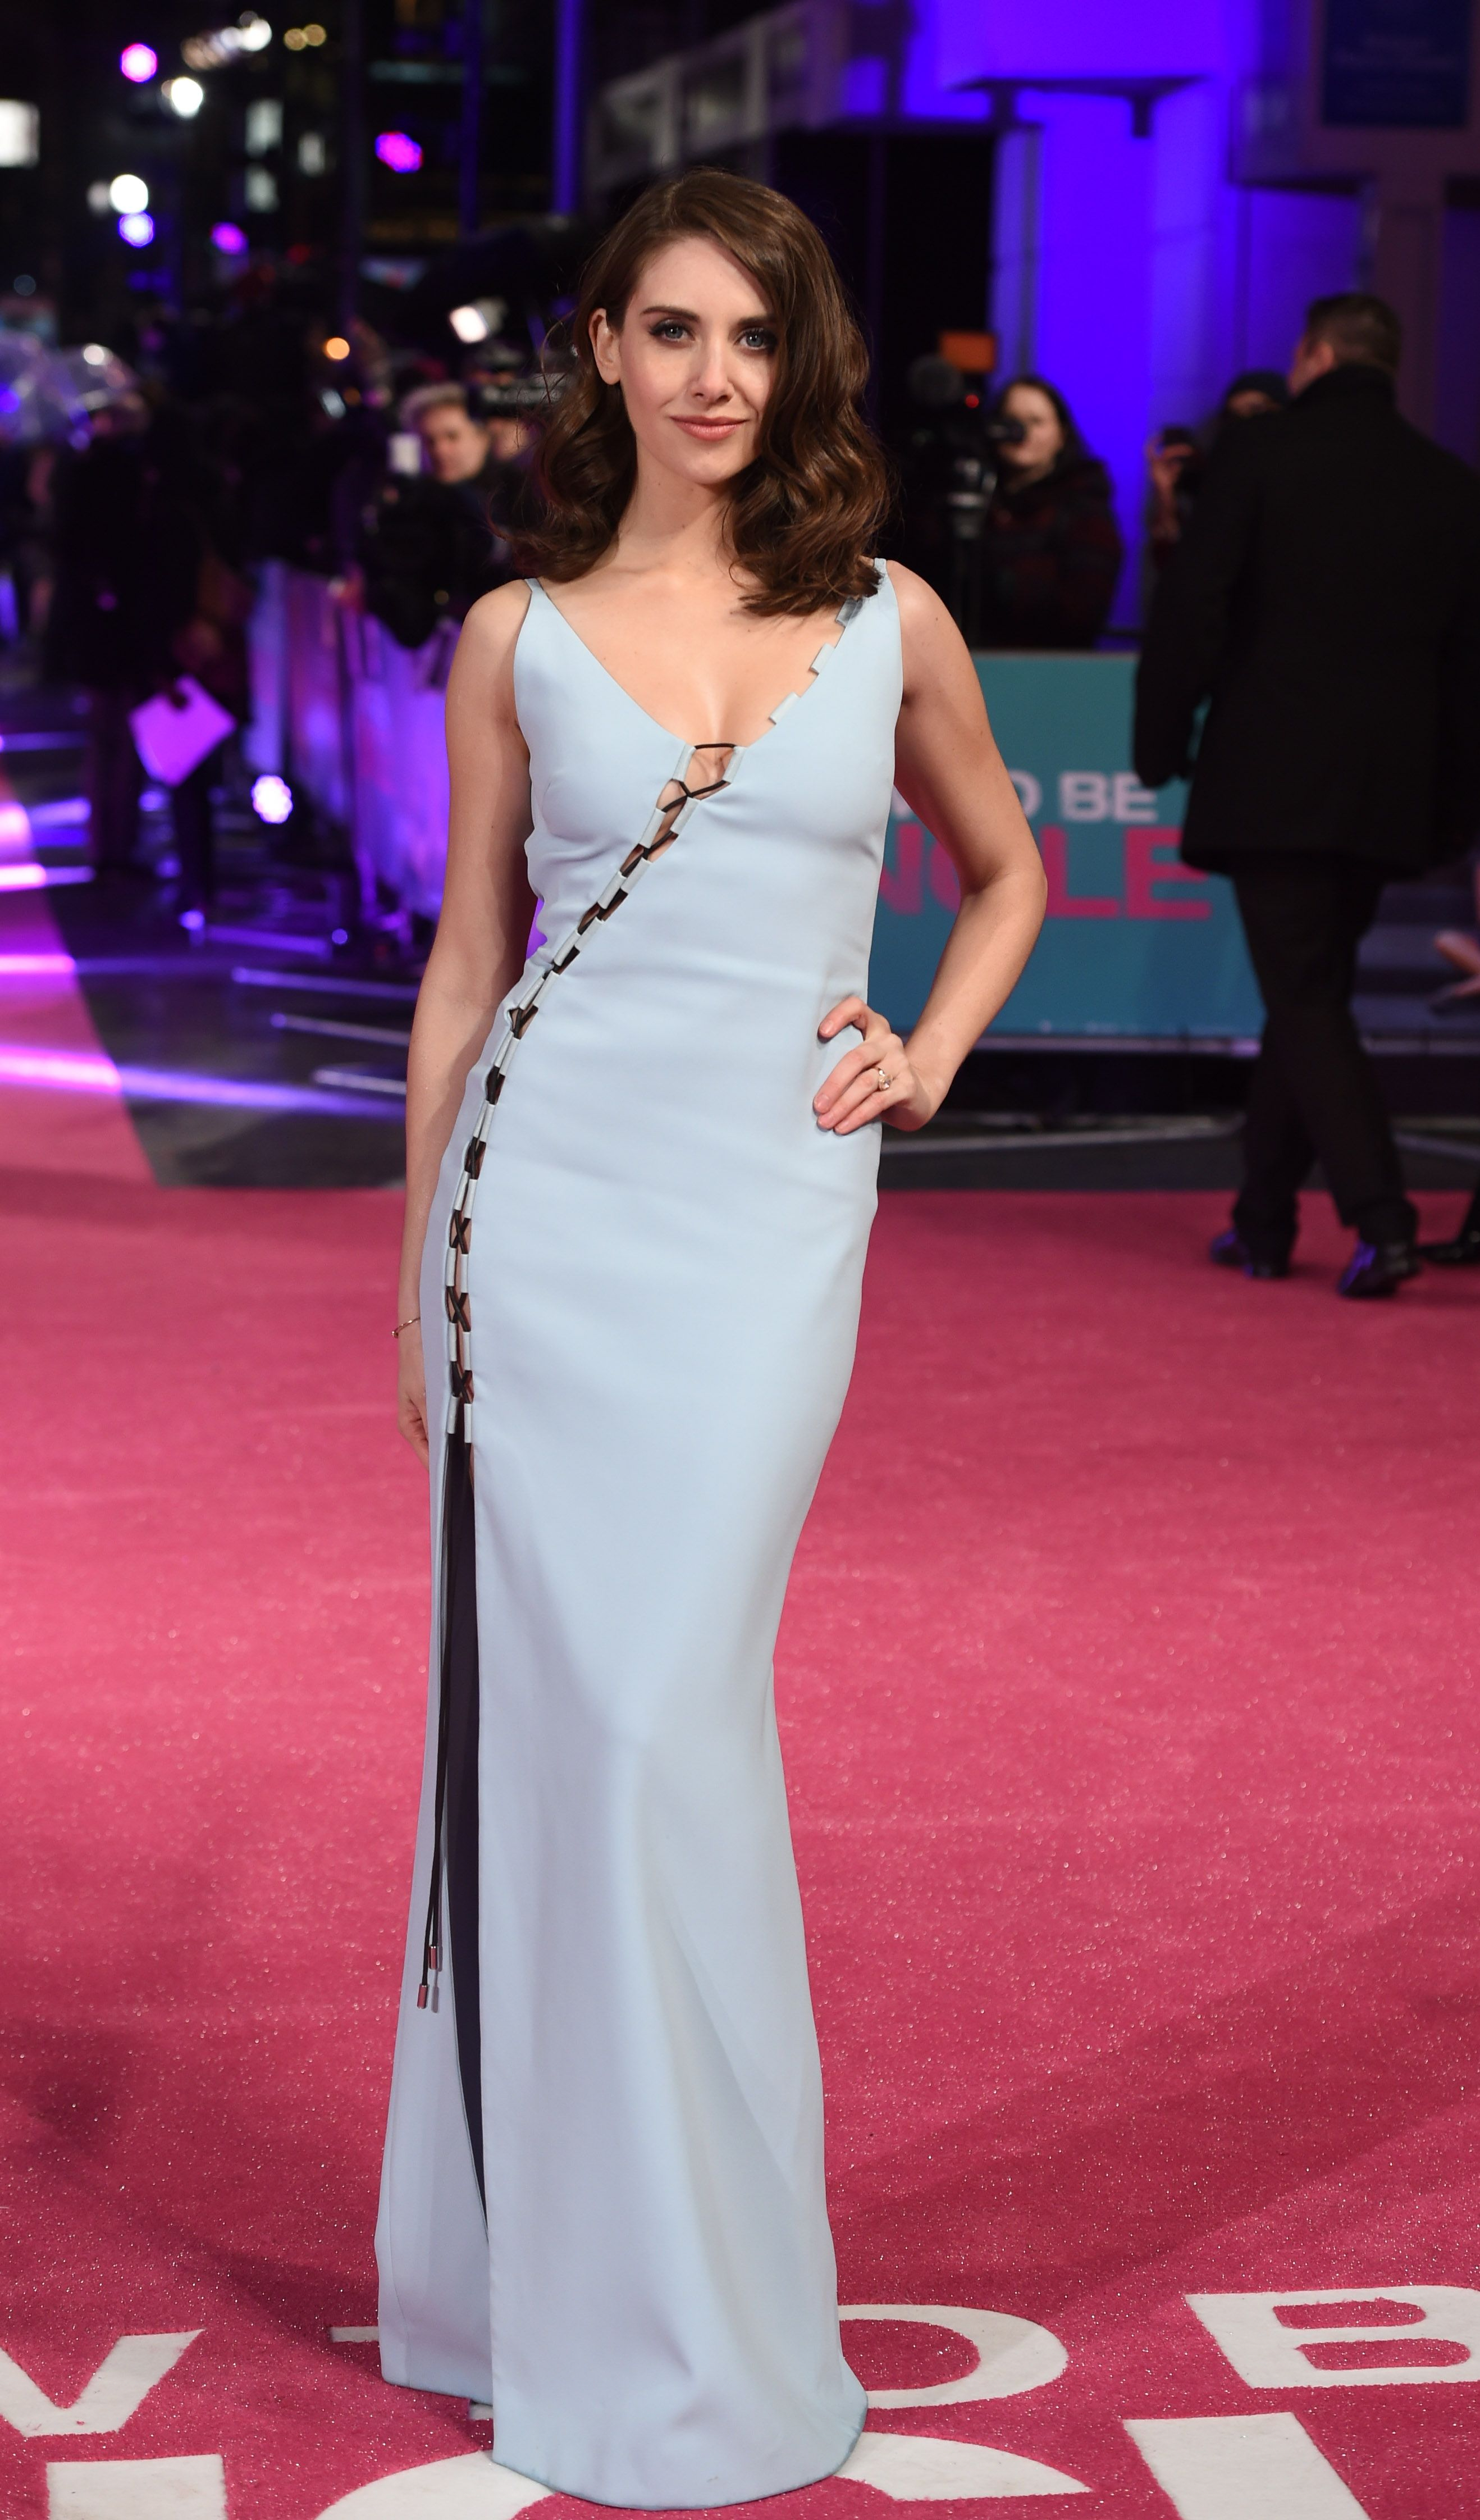 Alison brie at the how to be single premiere in london 2916 2g alison brie attends the european premiere of how to be single at the vue west end on february 2016 in london united kingdom ccuart Choice Image